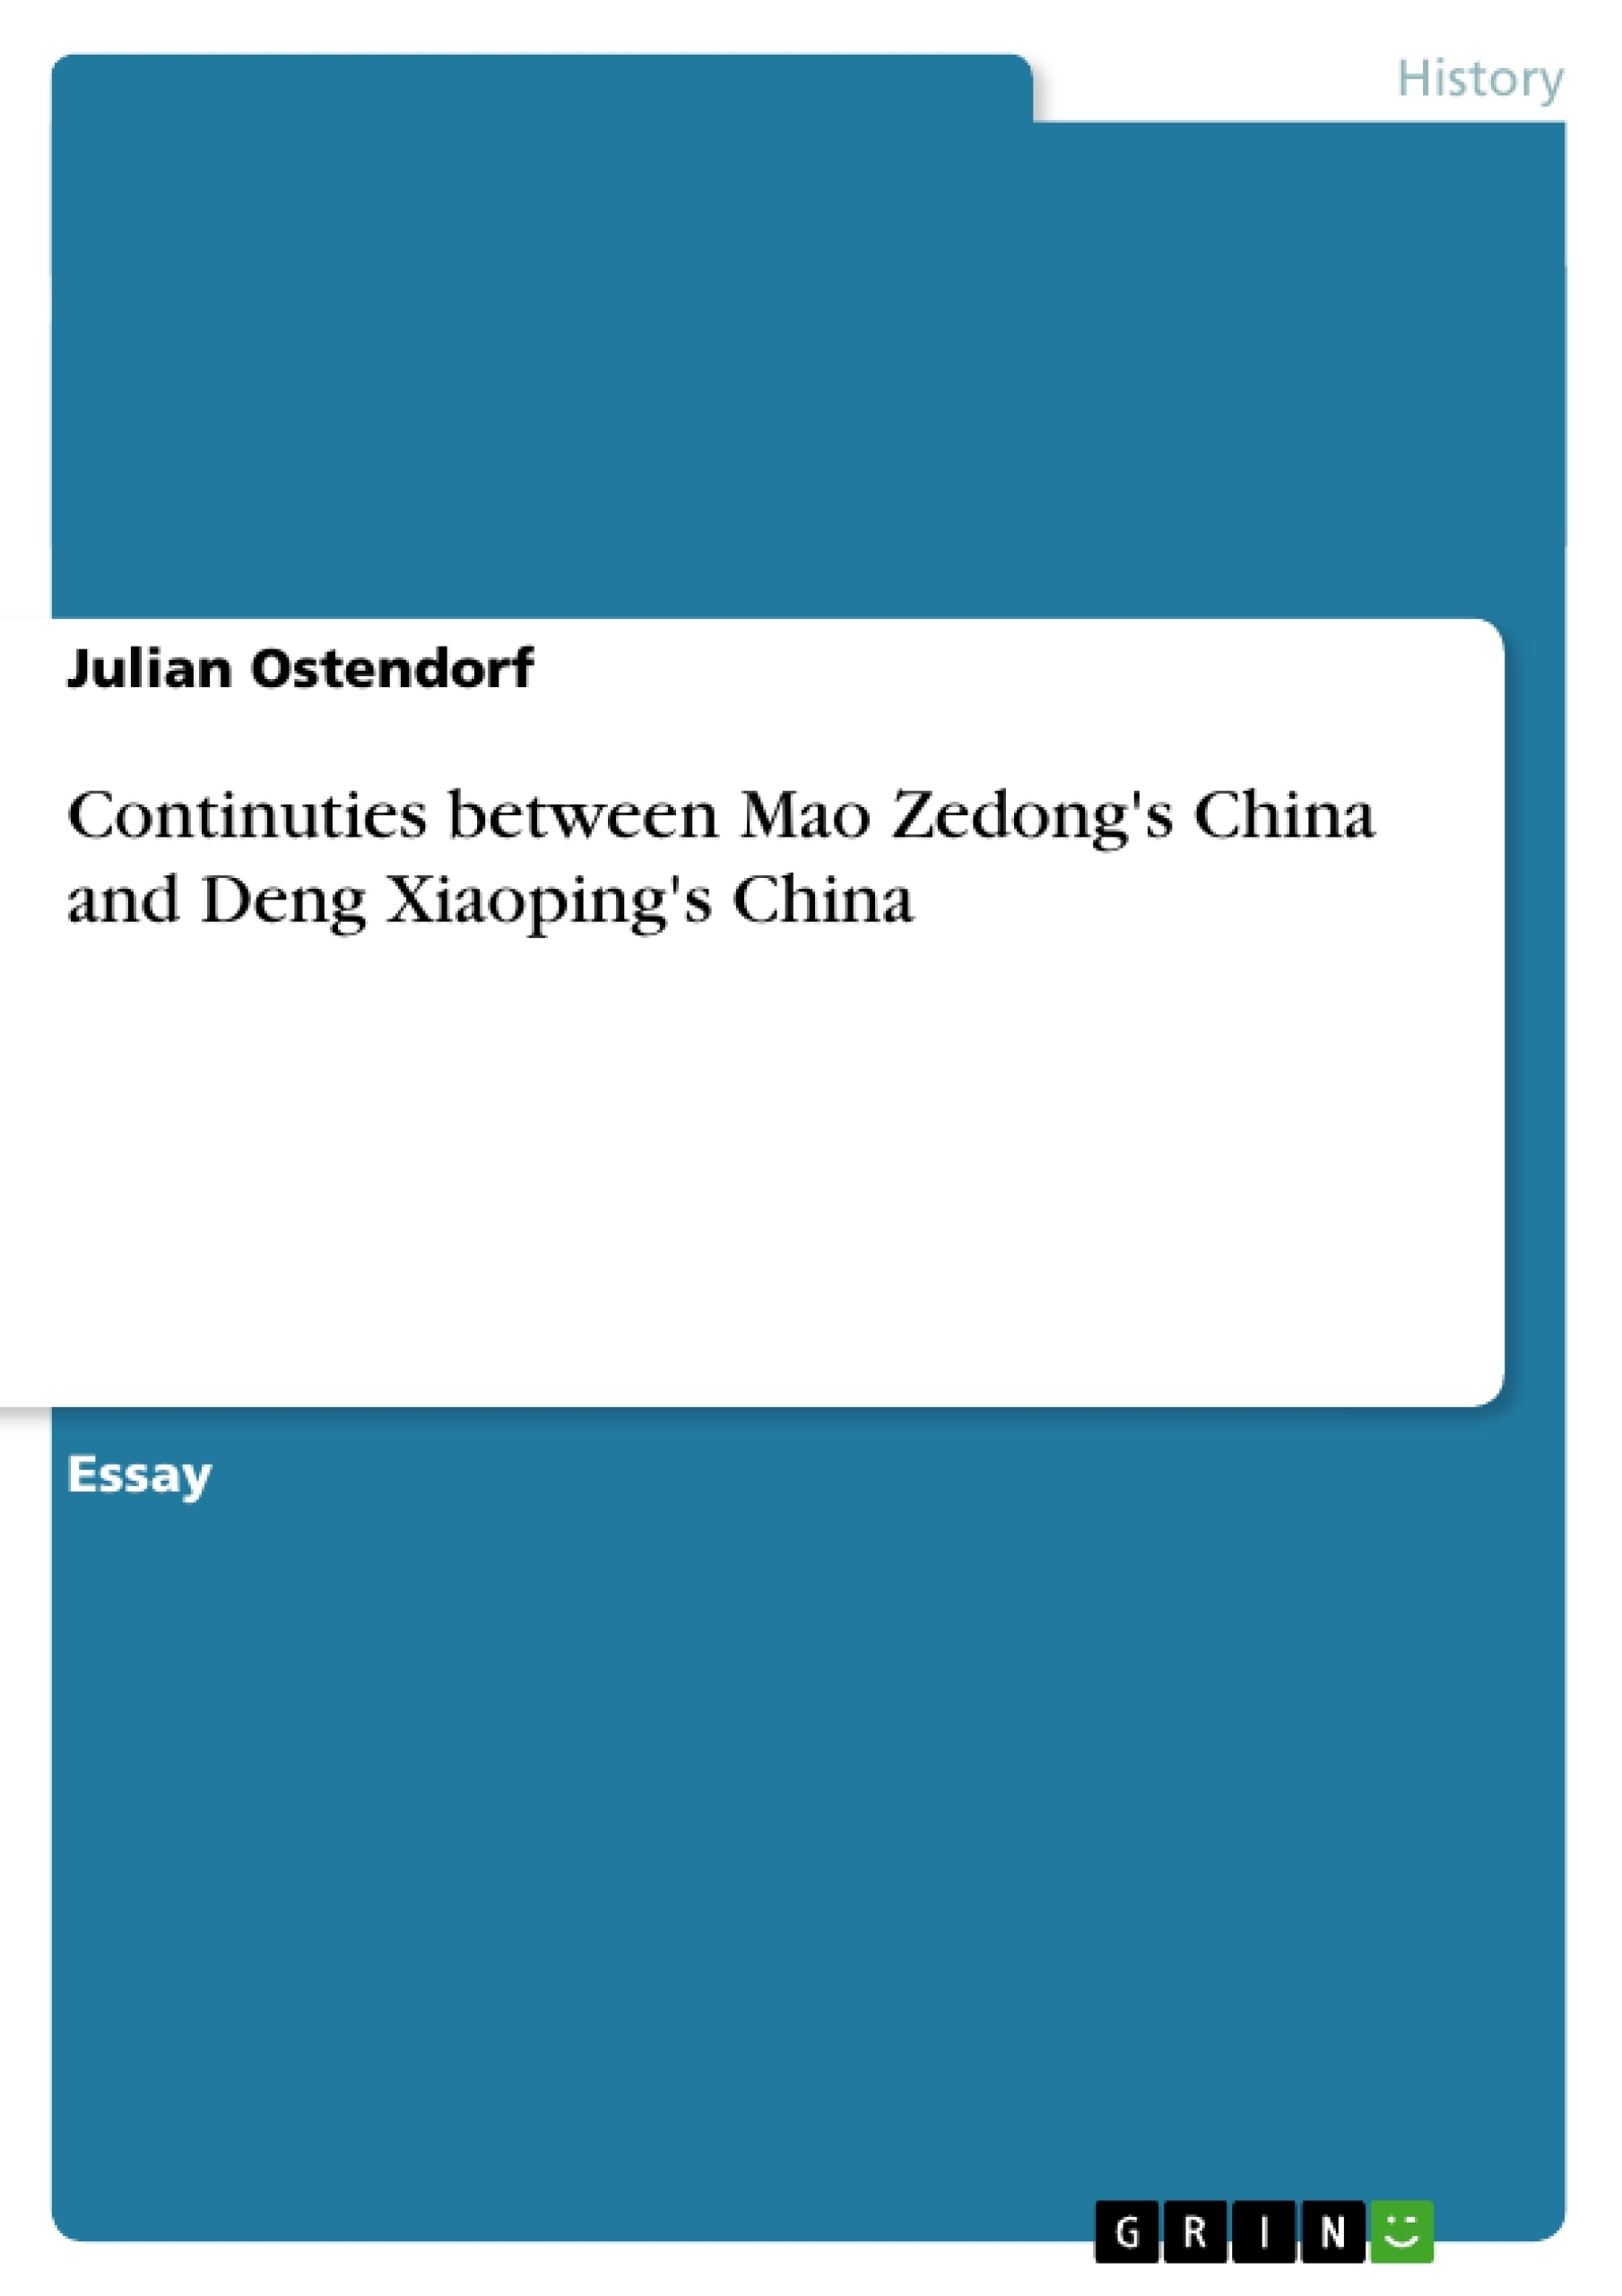 continuties between mao zedong s and deng xiaoping s continuties between mao zedong s and deng xiaoping s publish your master s thesis bachelor s thesis essay or term paper